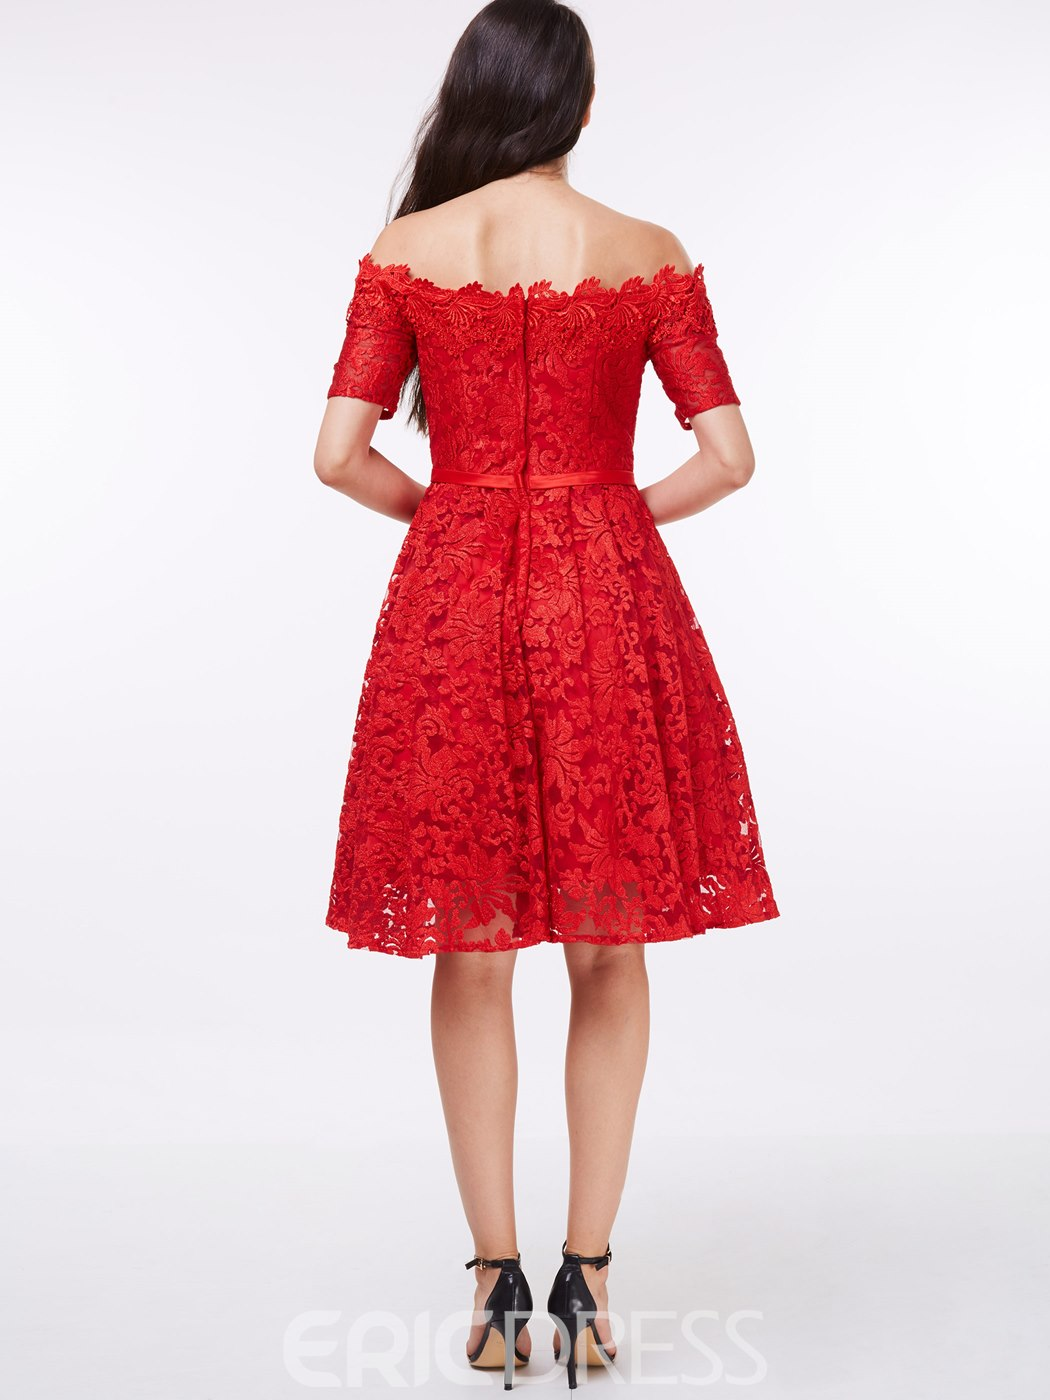 Ericdress Off the Shoulder Short Sleeves Red Lace Homecoming Dress